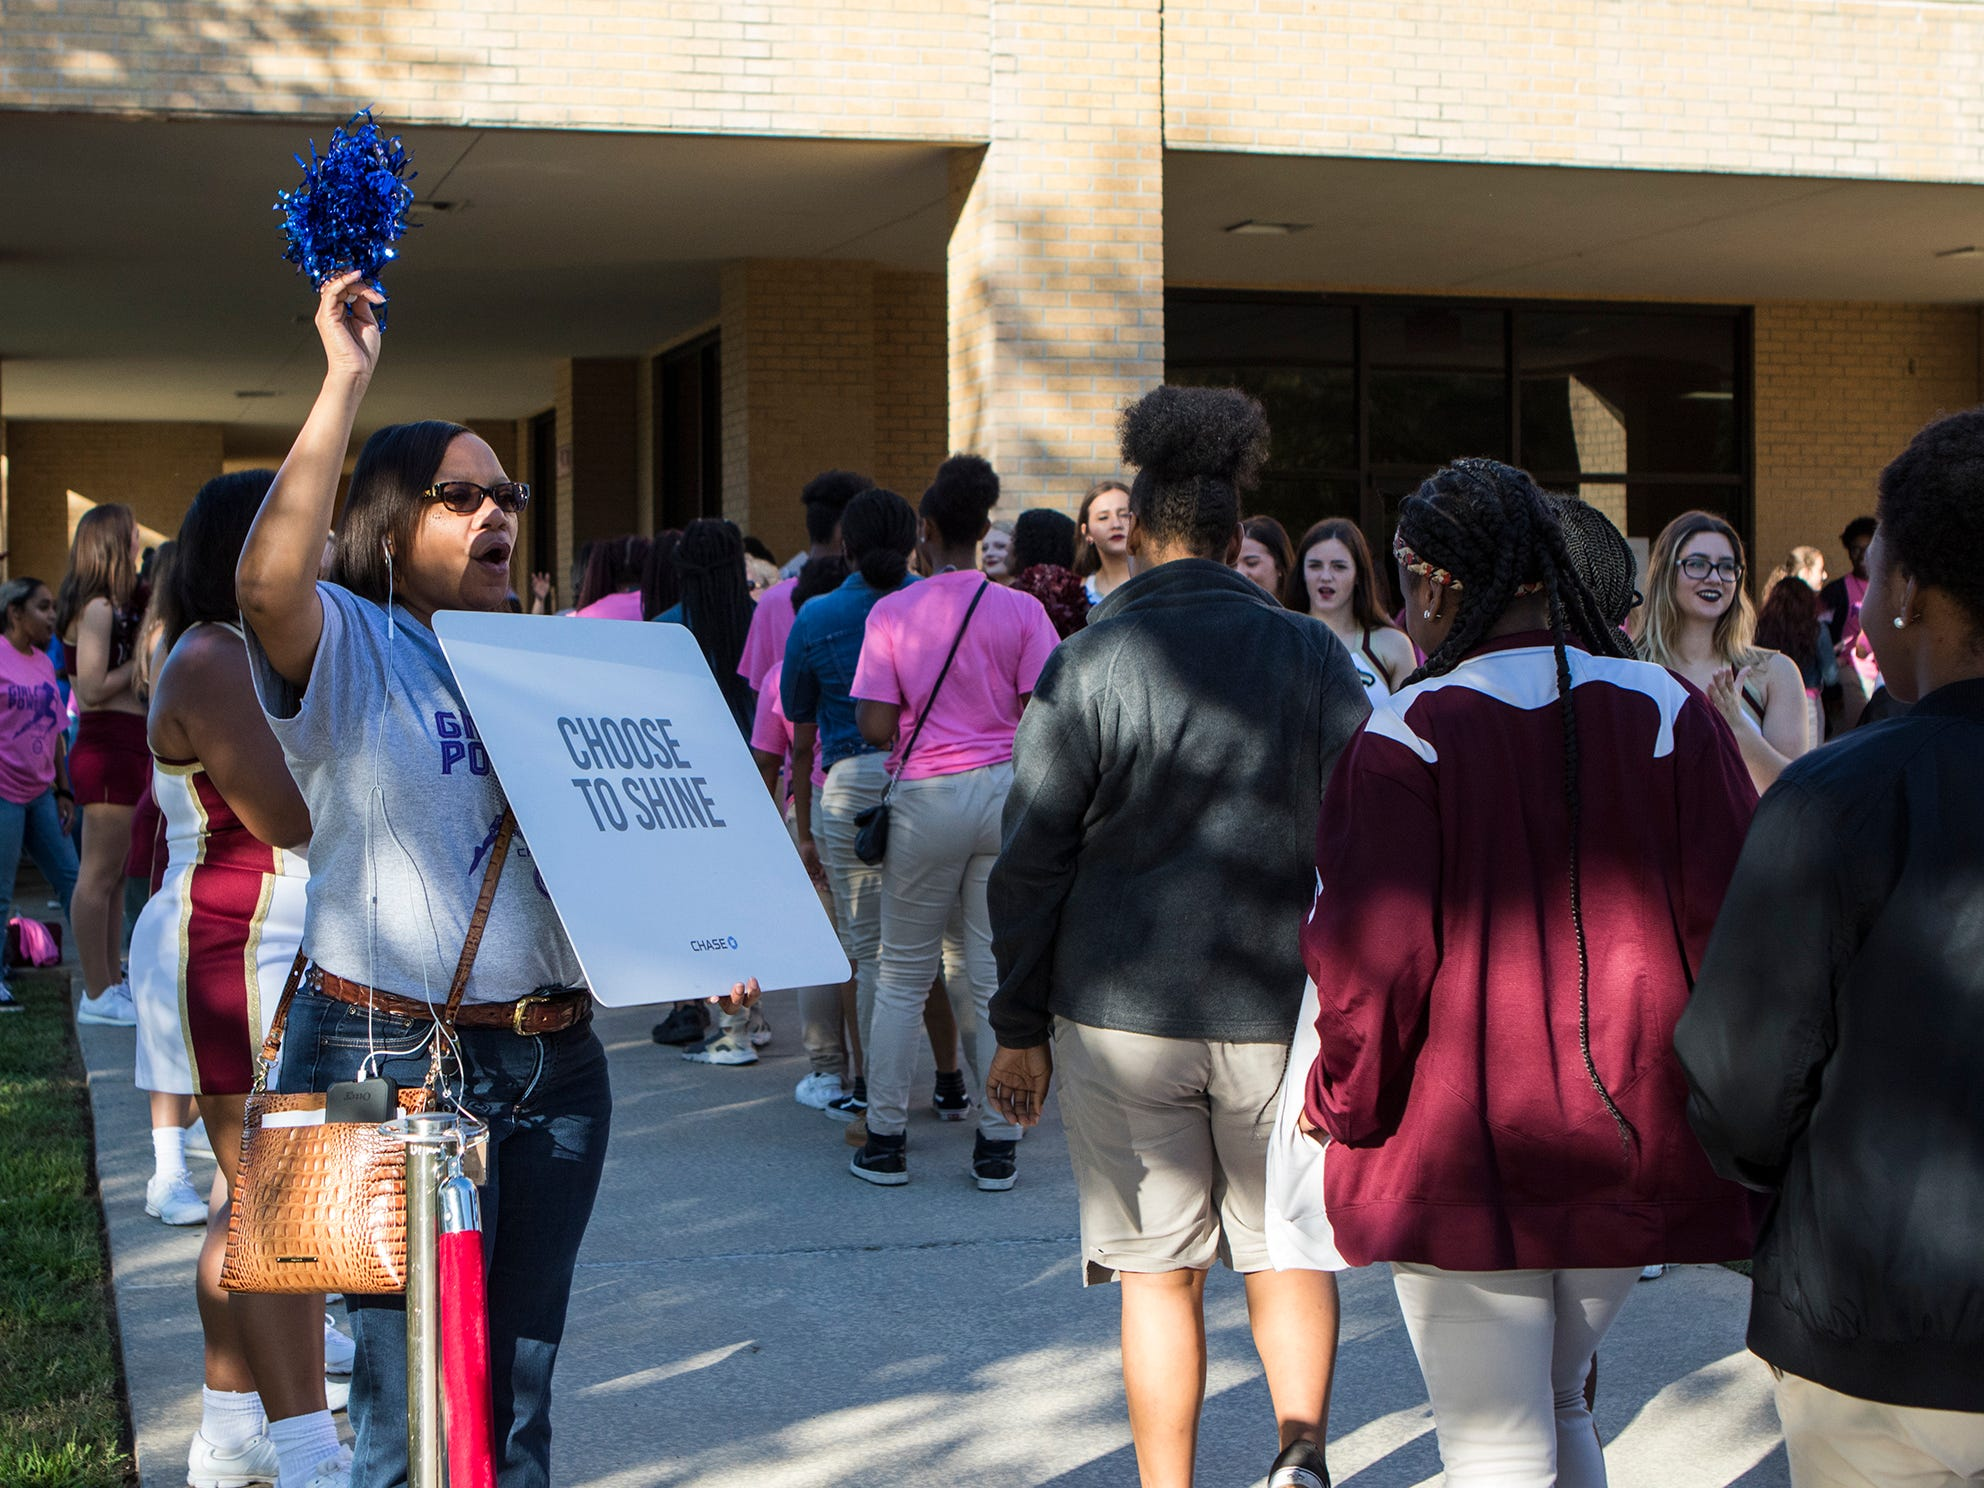 University of Louisiana at Monroe, in cooperation with Chase Bank, hosted the 2nd annual Our Girls Rock on campus in Monroe, La. on Oct. 5. The event is held for 8th grade girls to help them feel empowered and to instill a set of goals and ideas which that they can achieve more for themselves through education. The event consisted of a tour of ULM's campus by current students, a Q & A panel featuring current college students who were graduates of the four Monroe area middle schools, and 2018 Ms. Louisiana, Holli' Conway, speaking and performing.